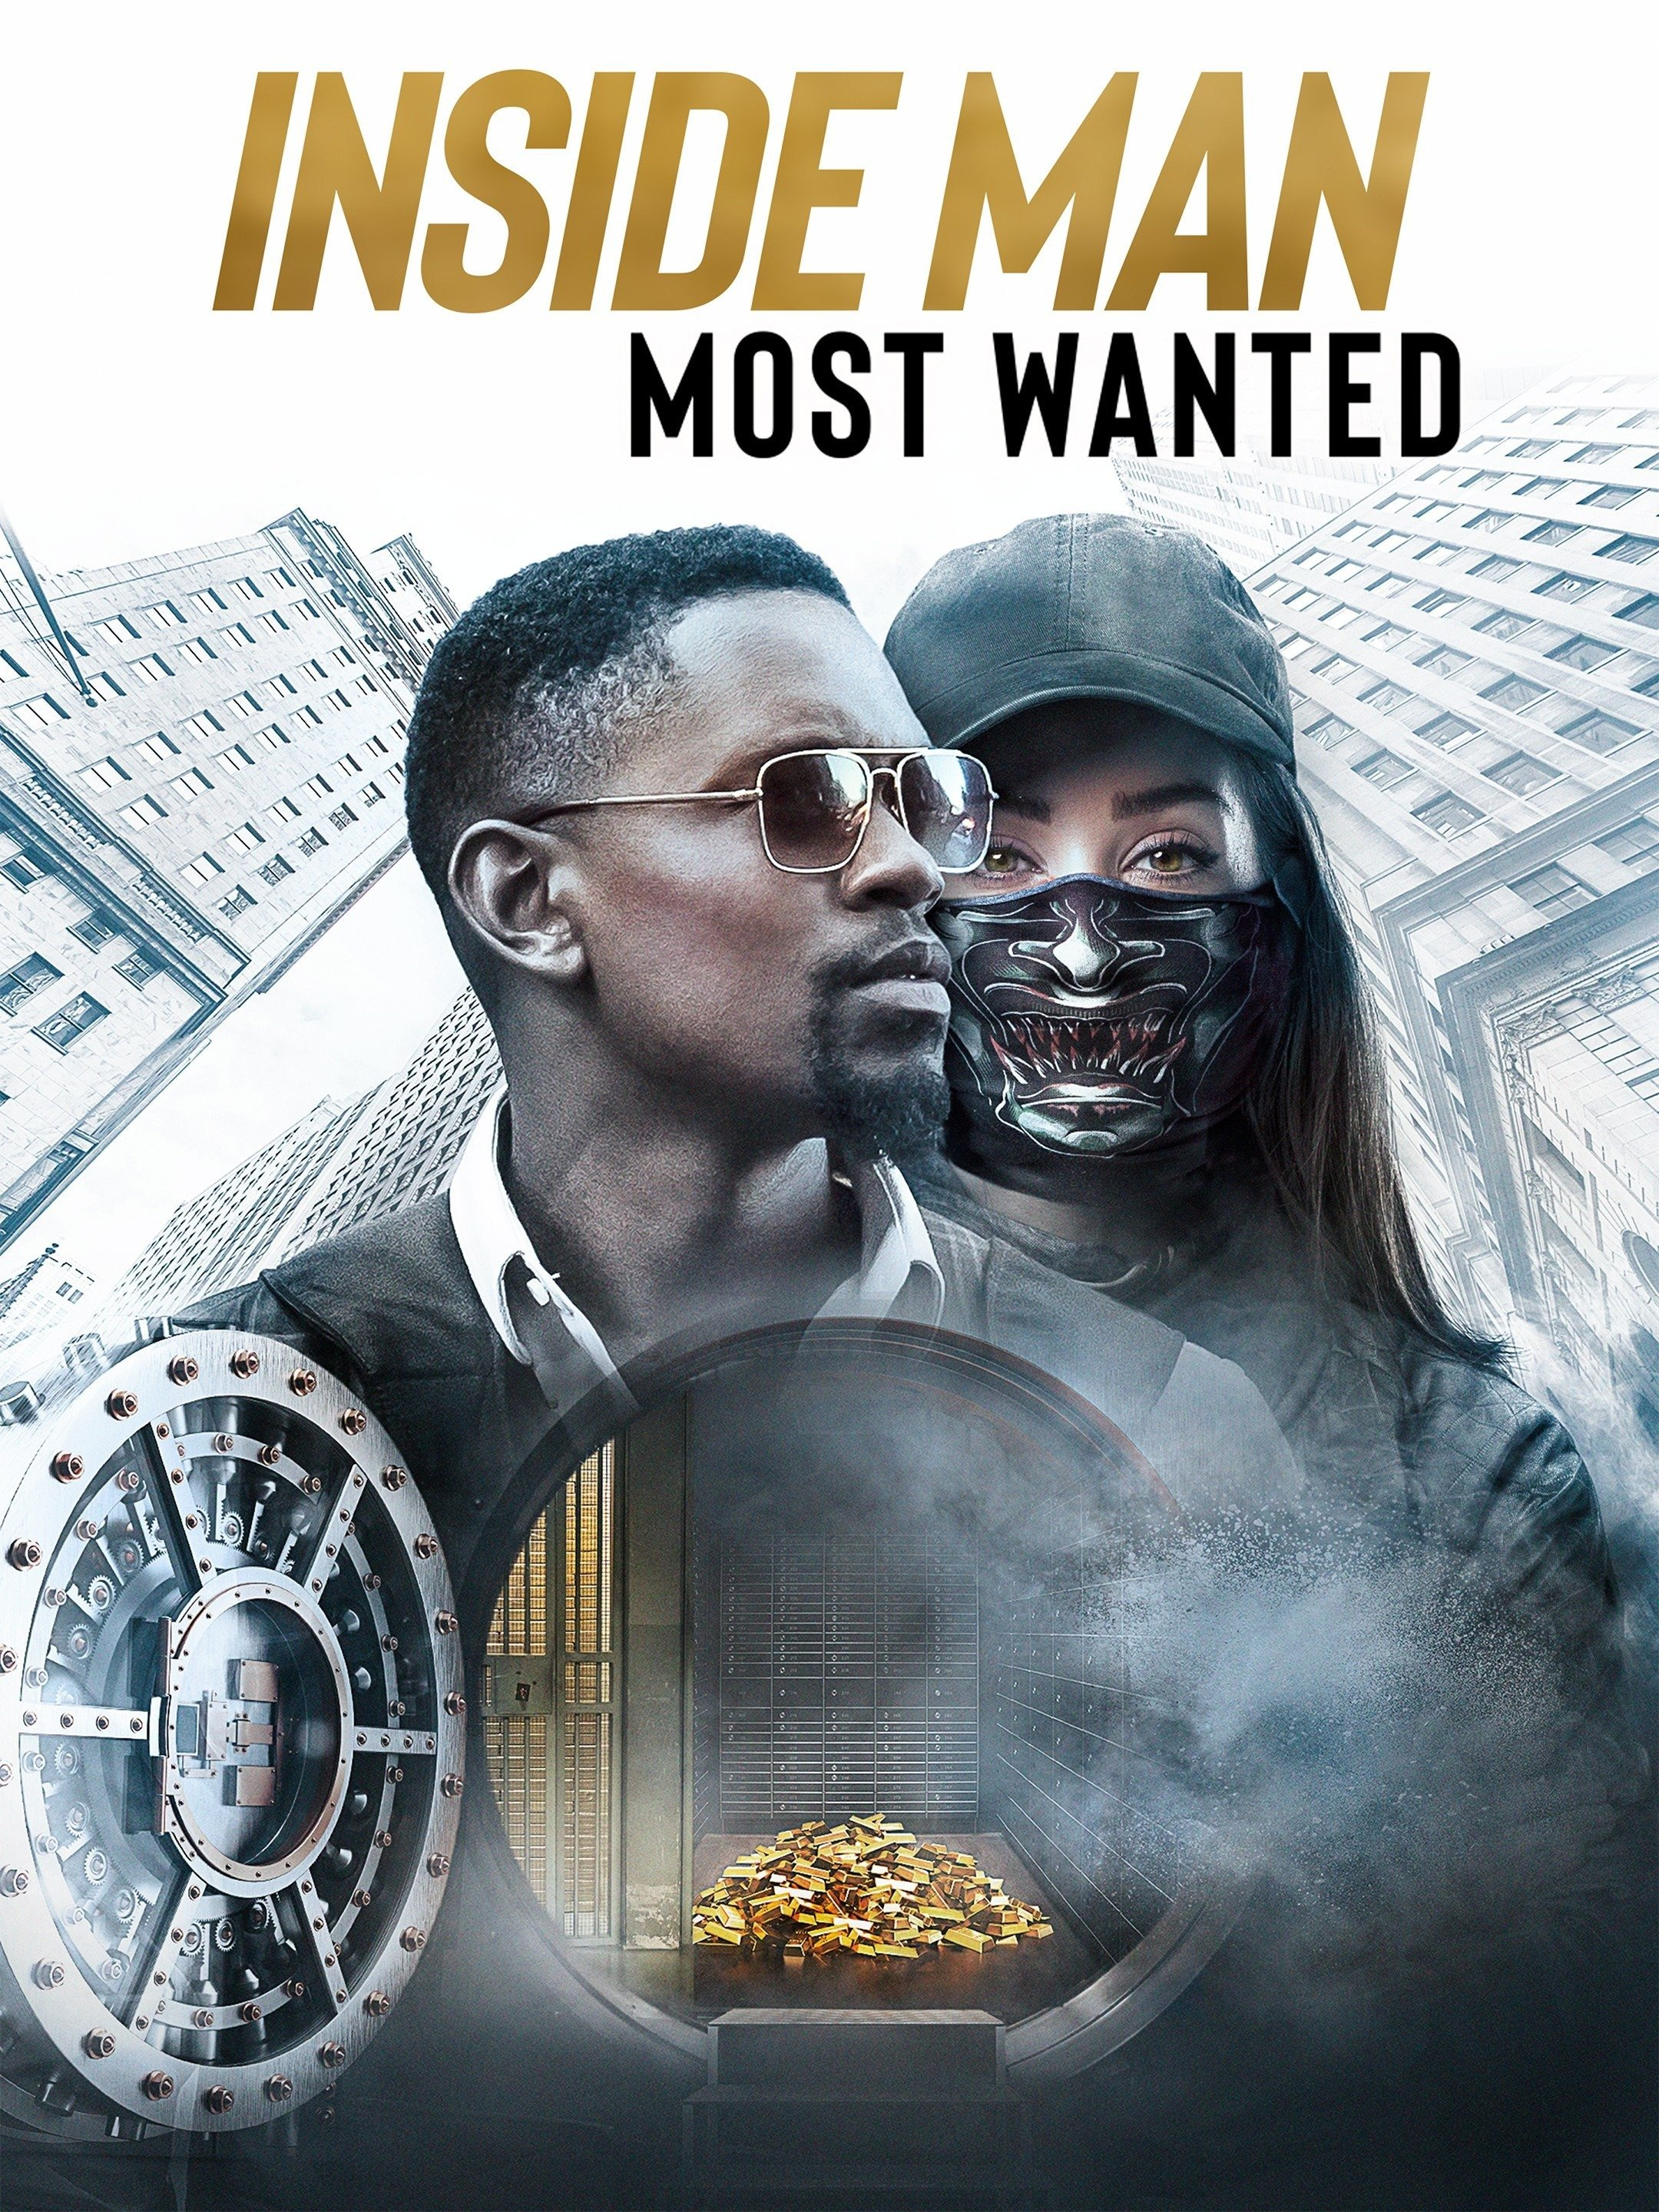 Inside Man Most Wanted 2019 Rotten Tomatoes